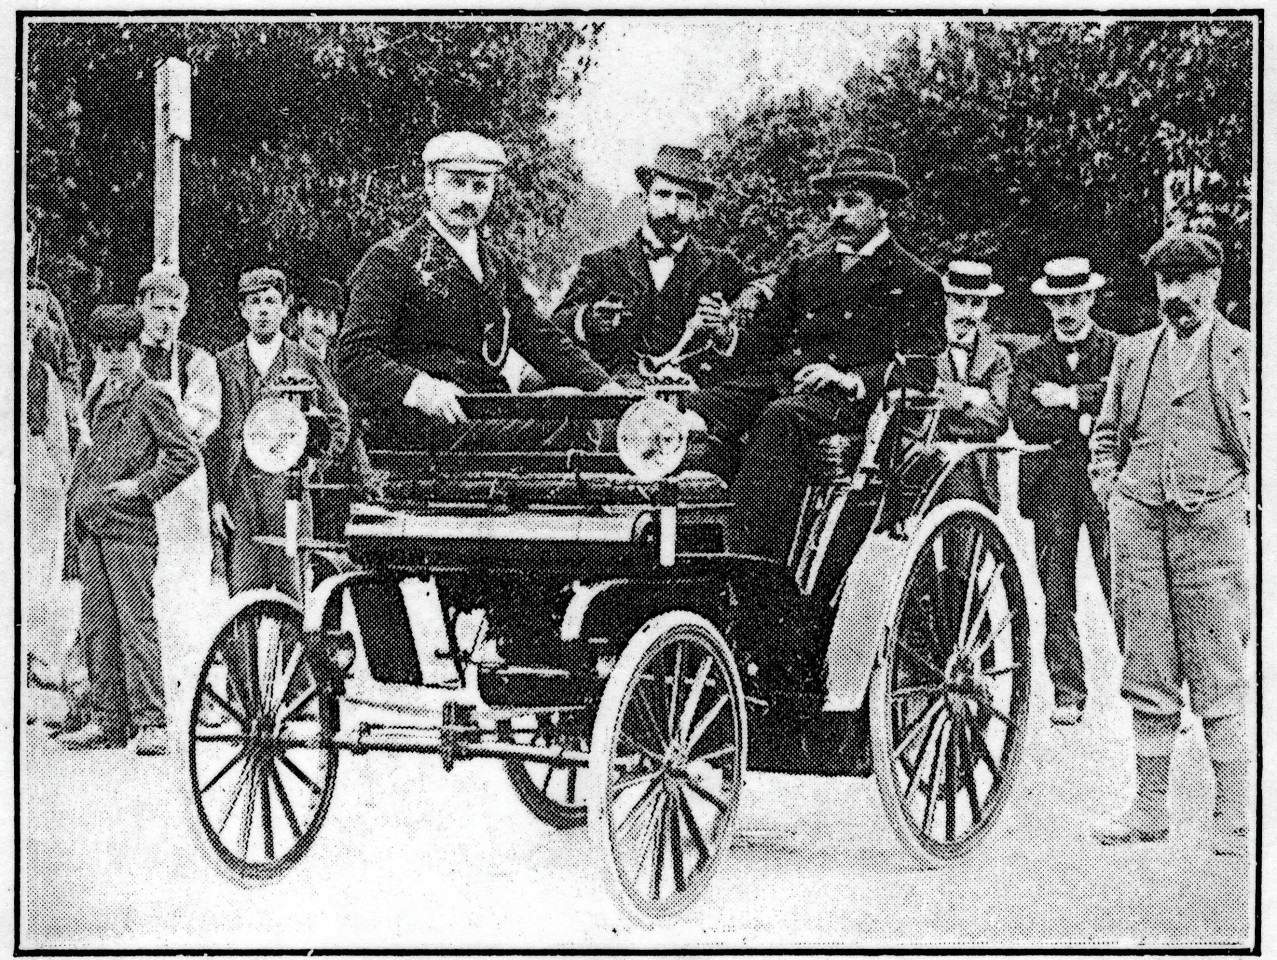 GTM is searching for Dr Howie's Daimler photograph